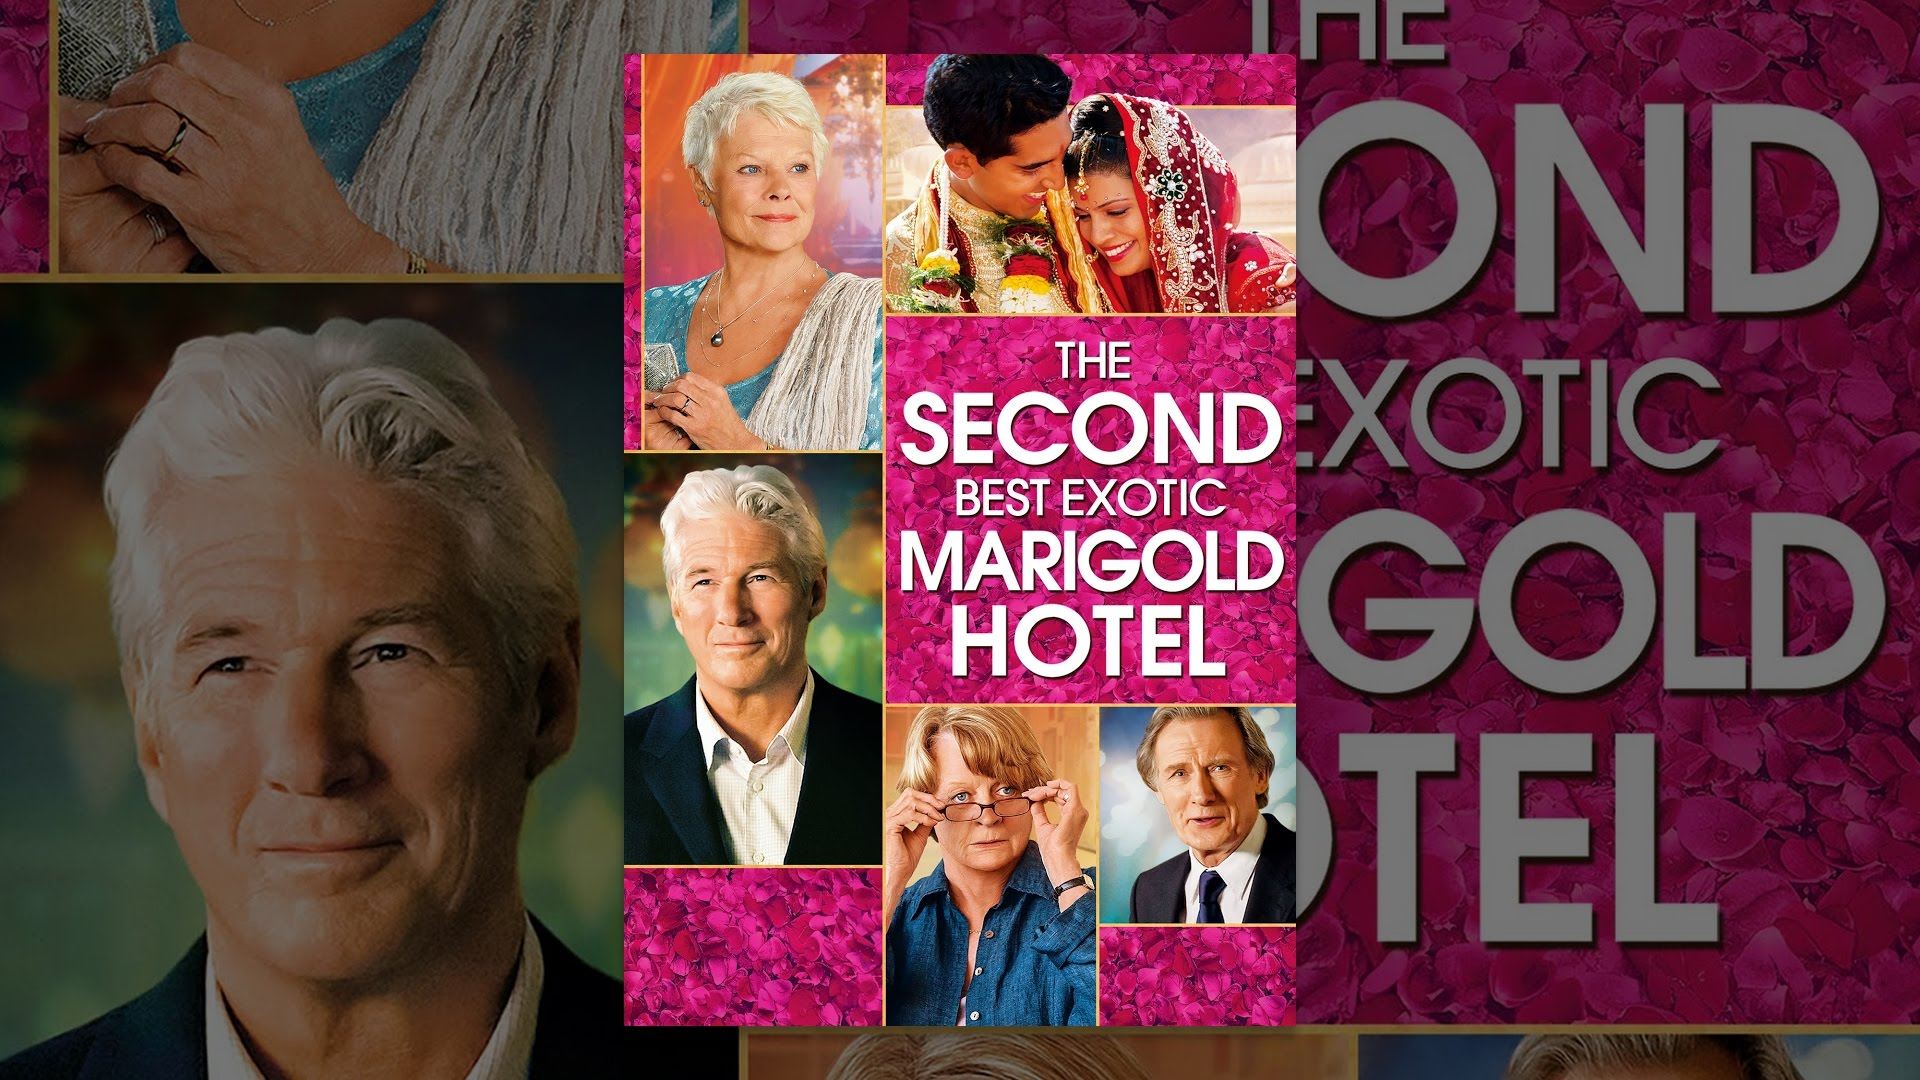 the most exotic marigold hotel essay The second best exotic marigold hotel a movie review by lloyd i sederer, md.